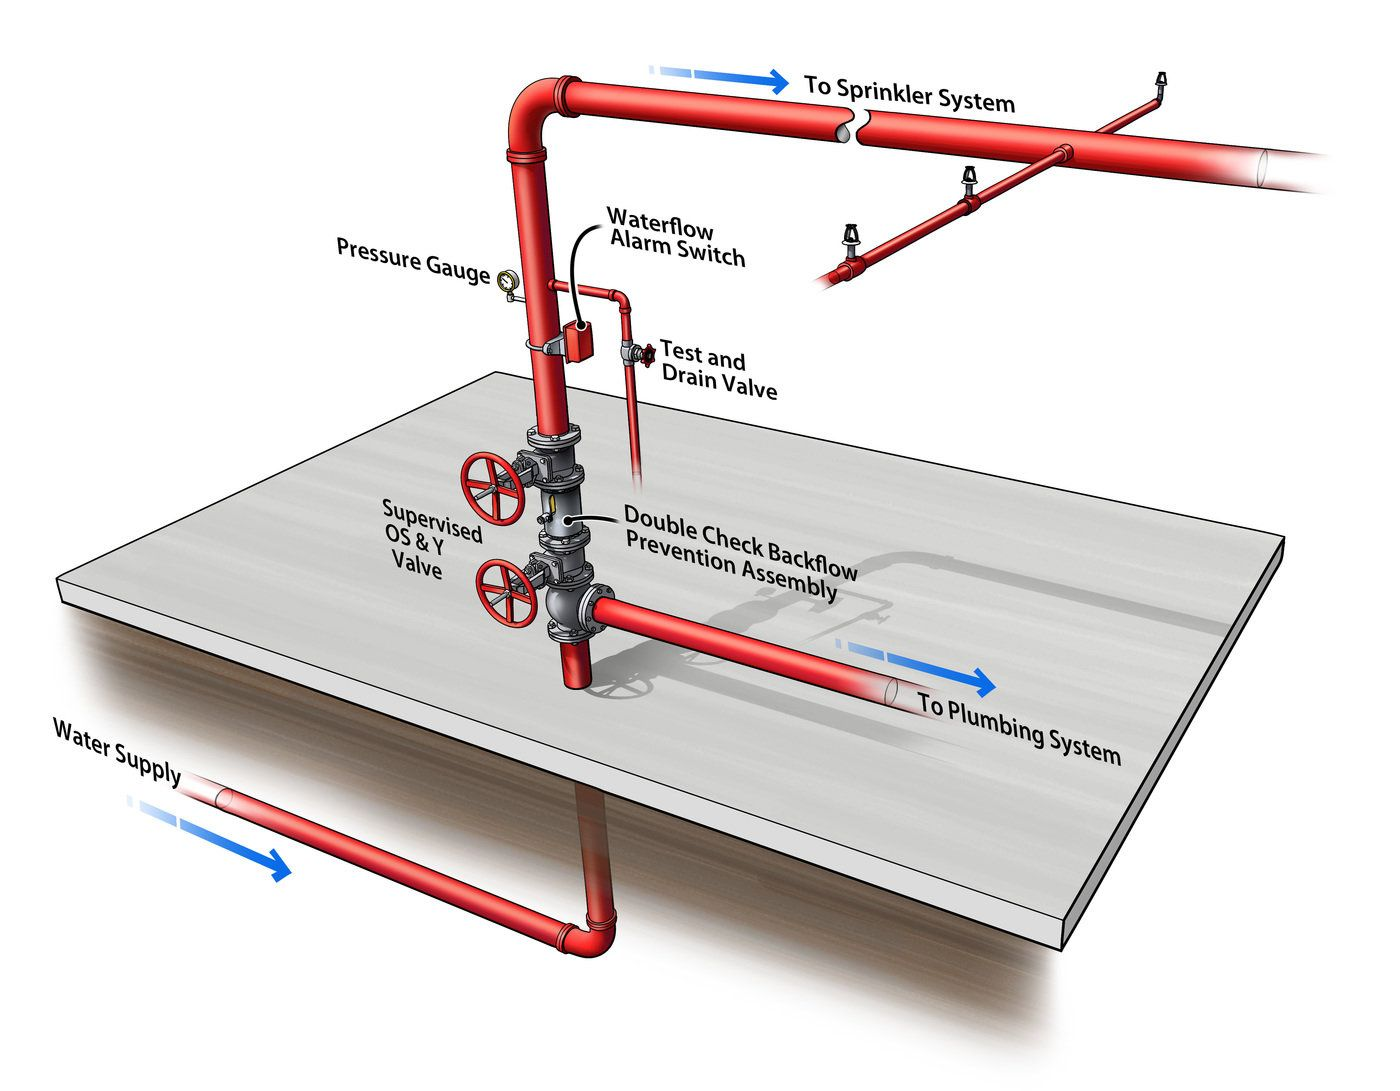 Engineering Componets By Michael Schrader At Coroflot Com Fire Sprinkler System Fire Systems Fire Alarm System